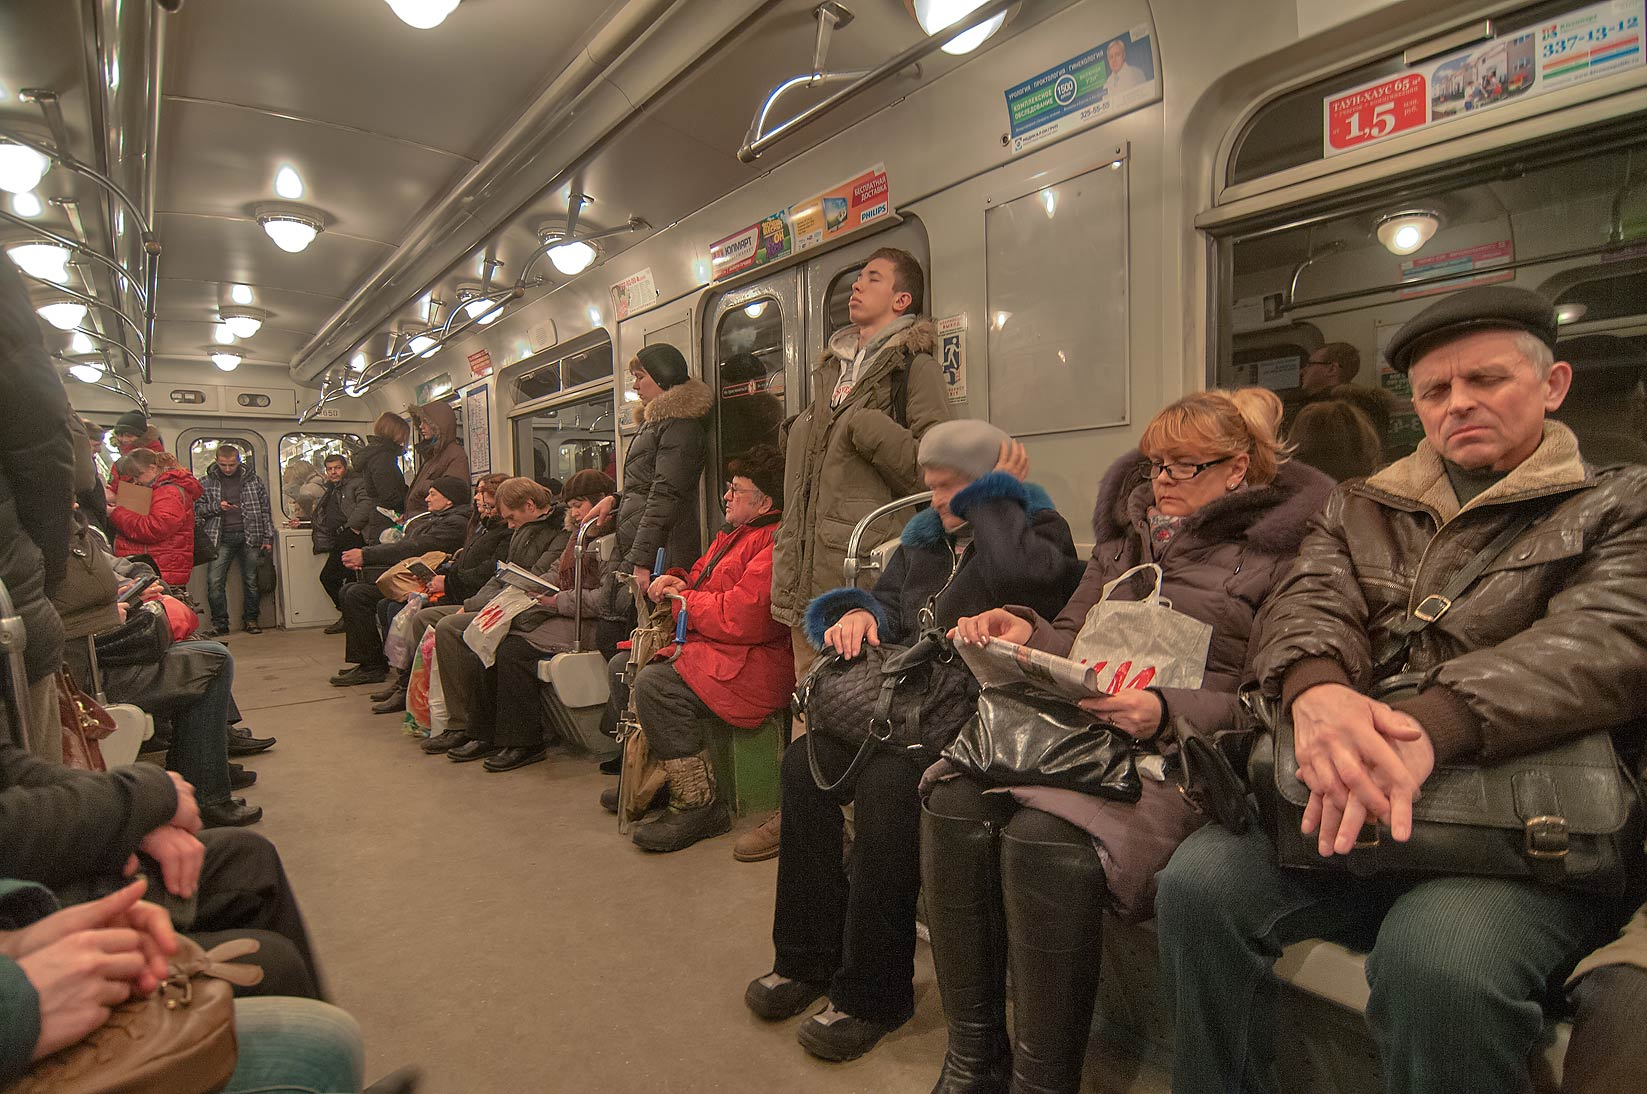 Passengers resting in a carriage of Metro (subway). St.Petersburg, Russia